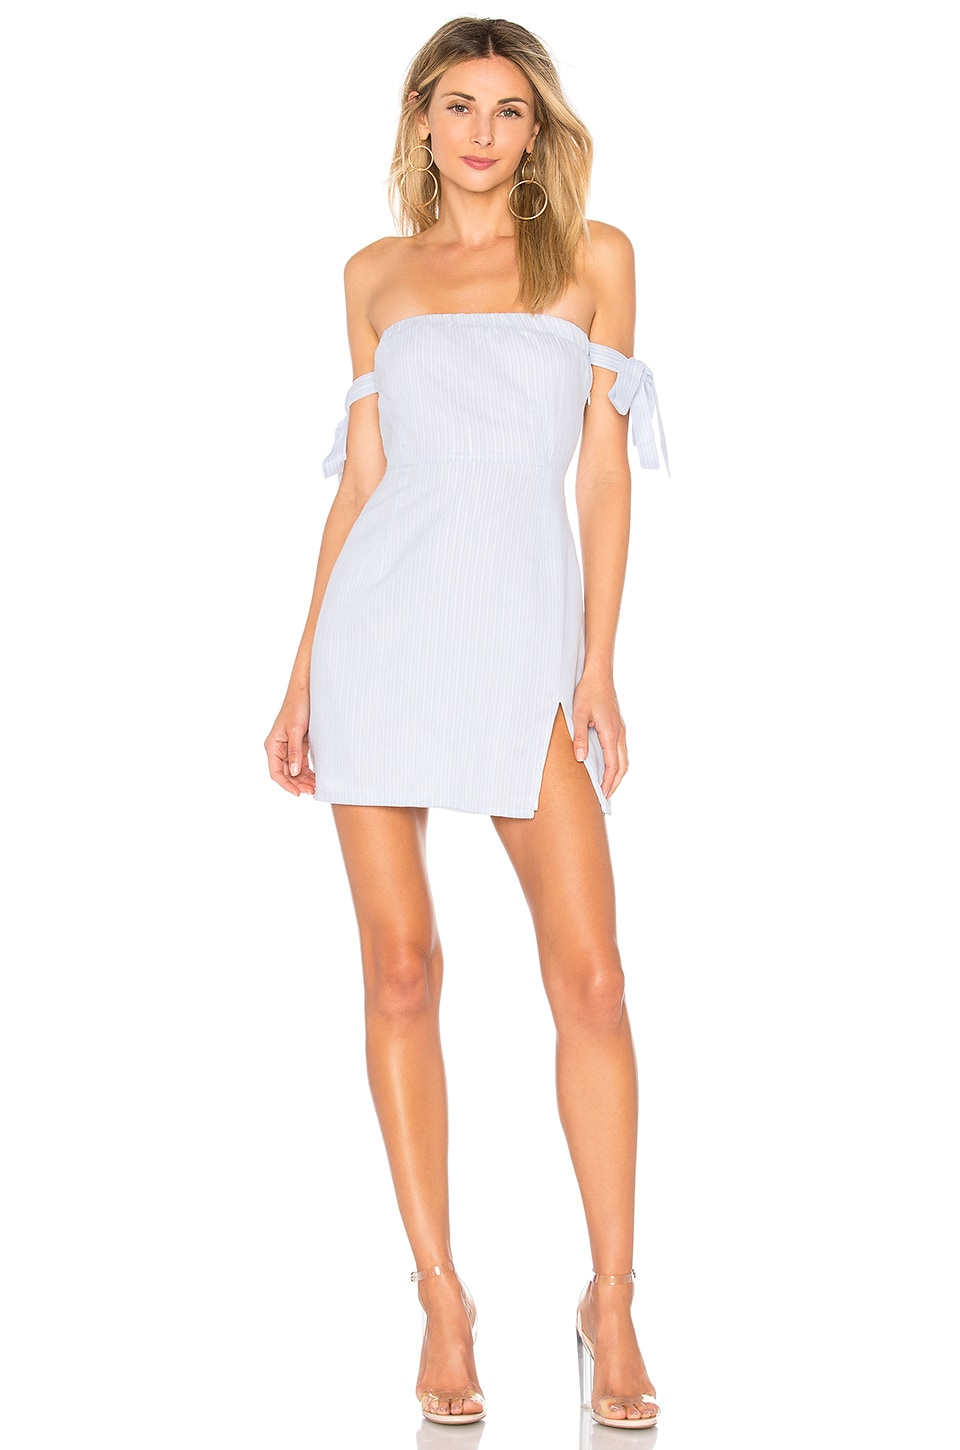 ATHENA OFF SHOULDER DRESS